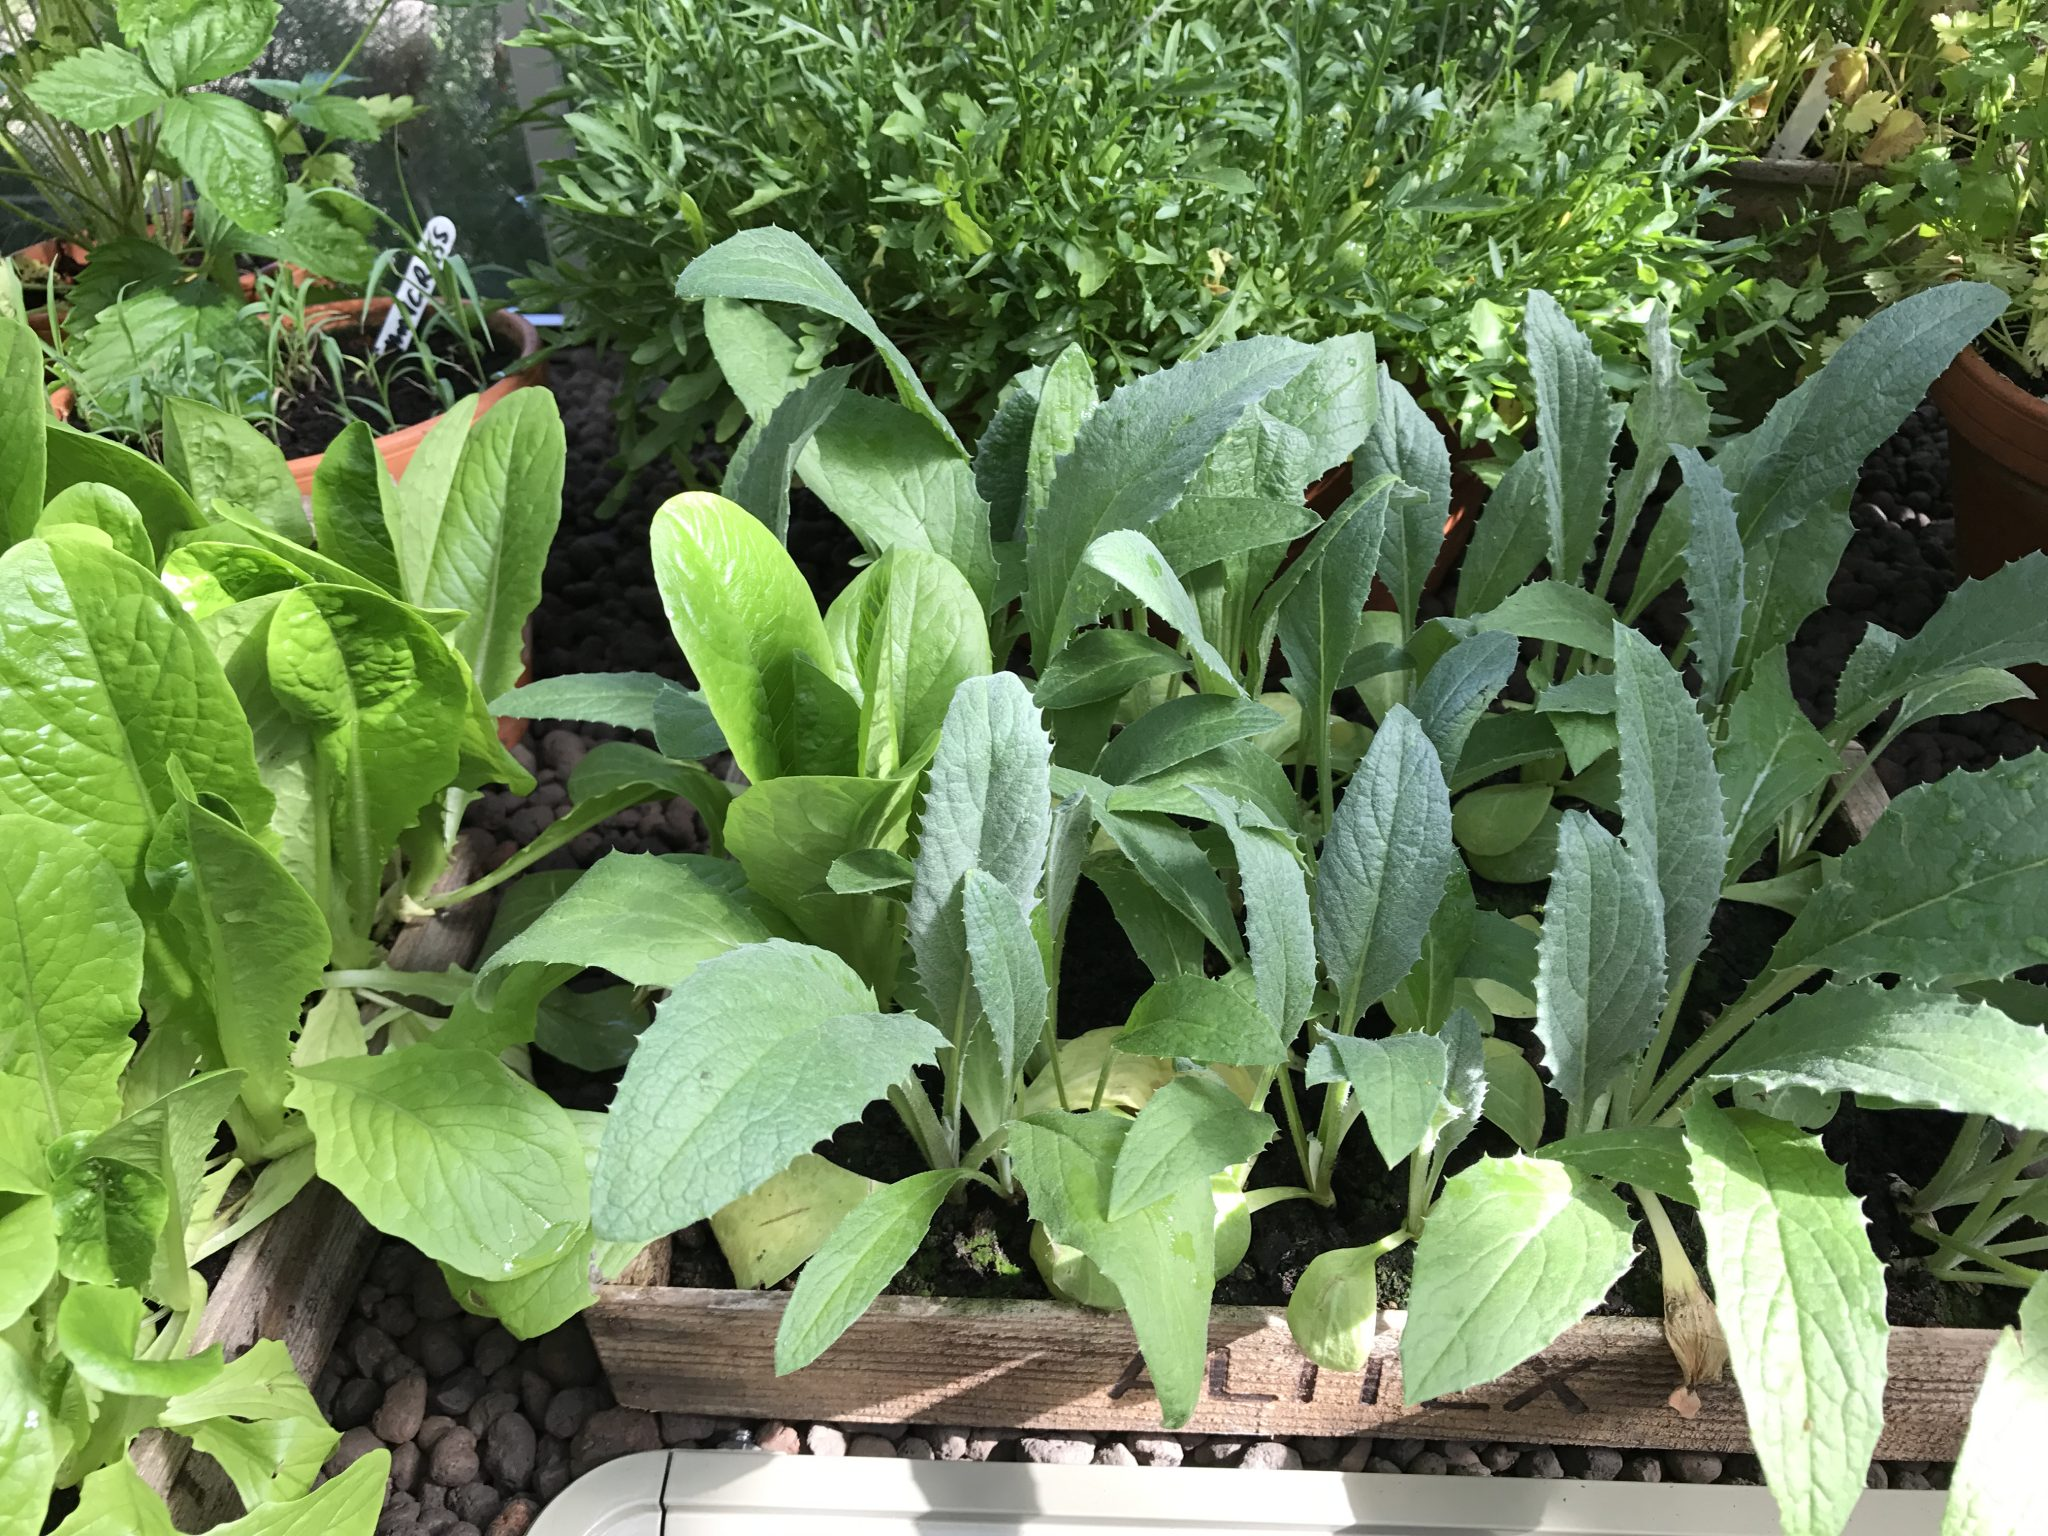 grow your own food my productive backyard diy gardening garden southern highlands wildes meadow burrawang robertson garden consultant grow your own good food growing plastic free garden